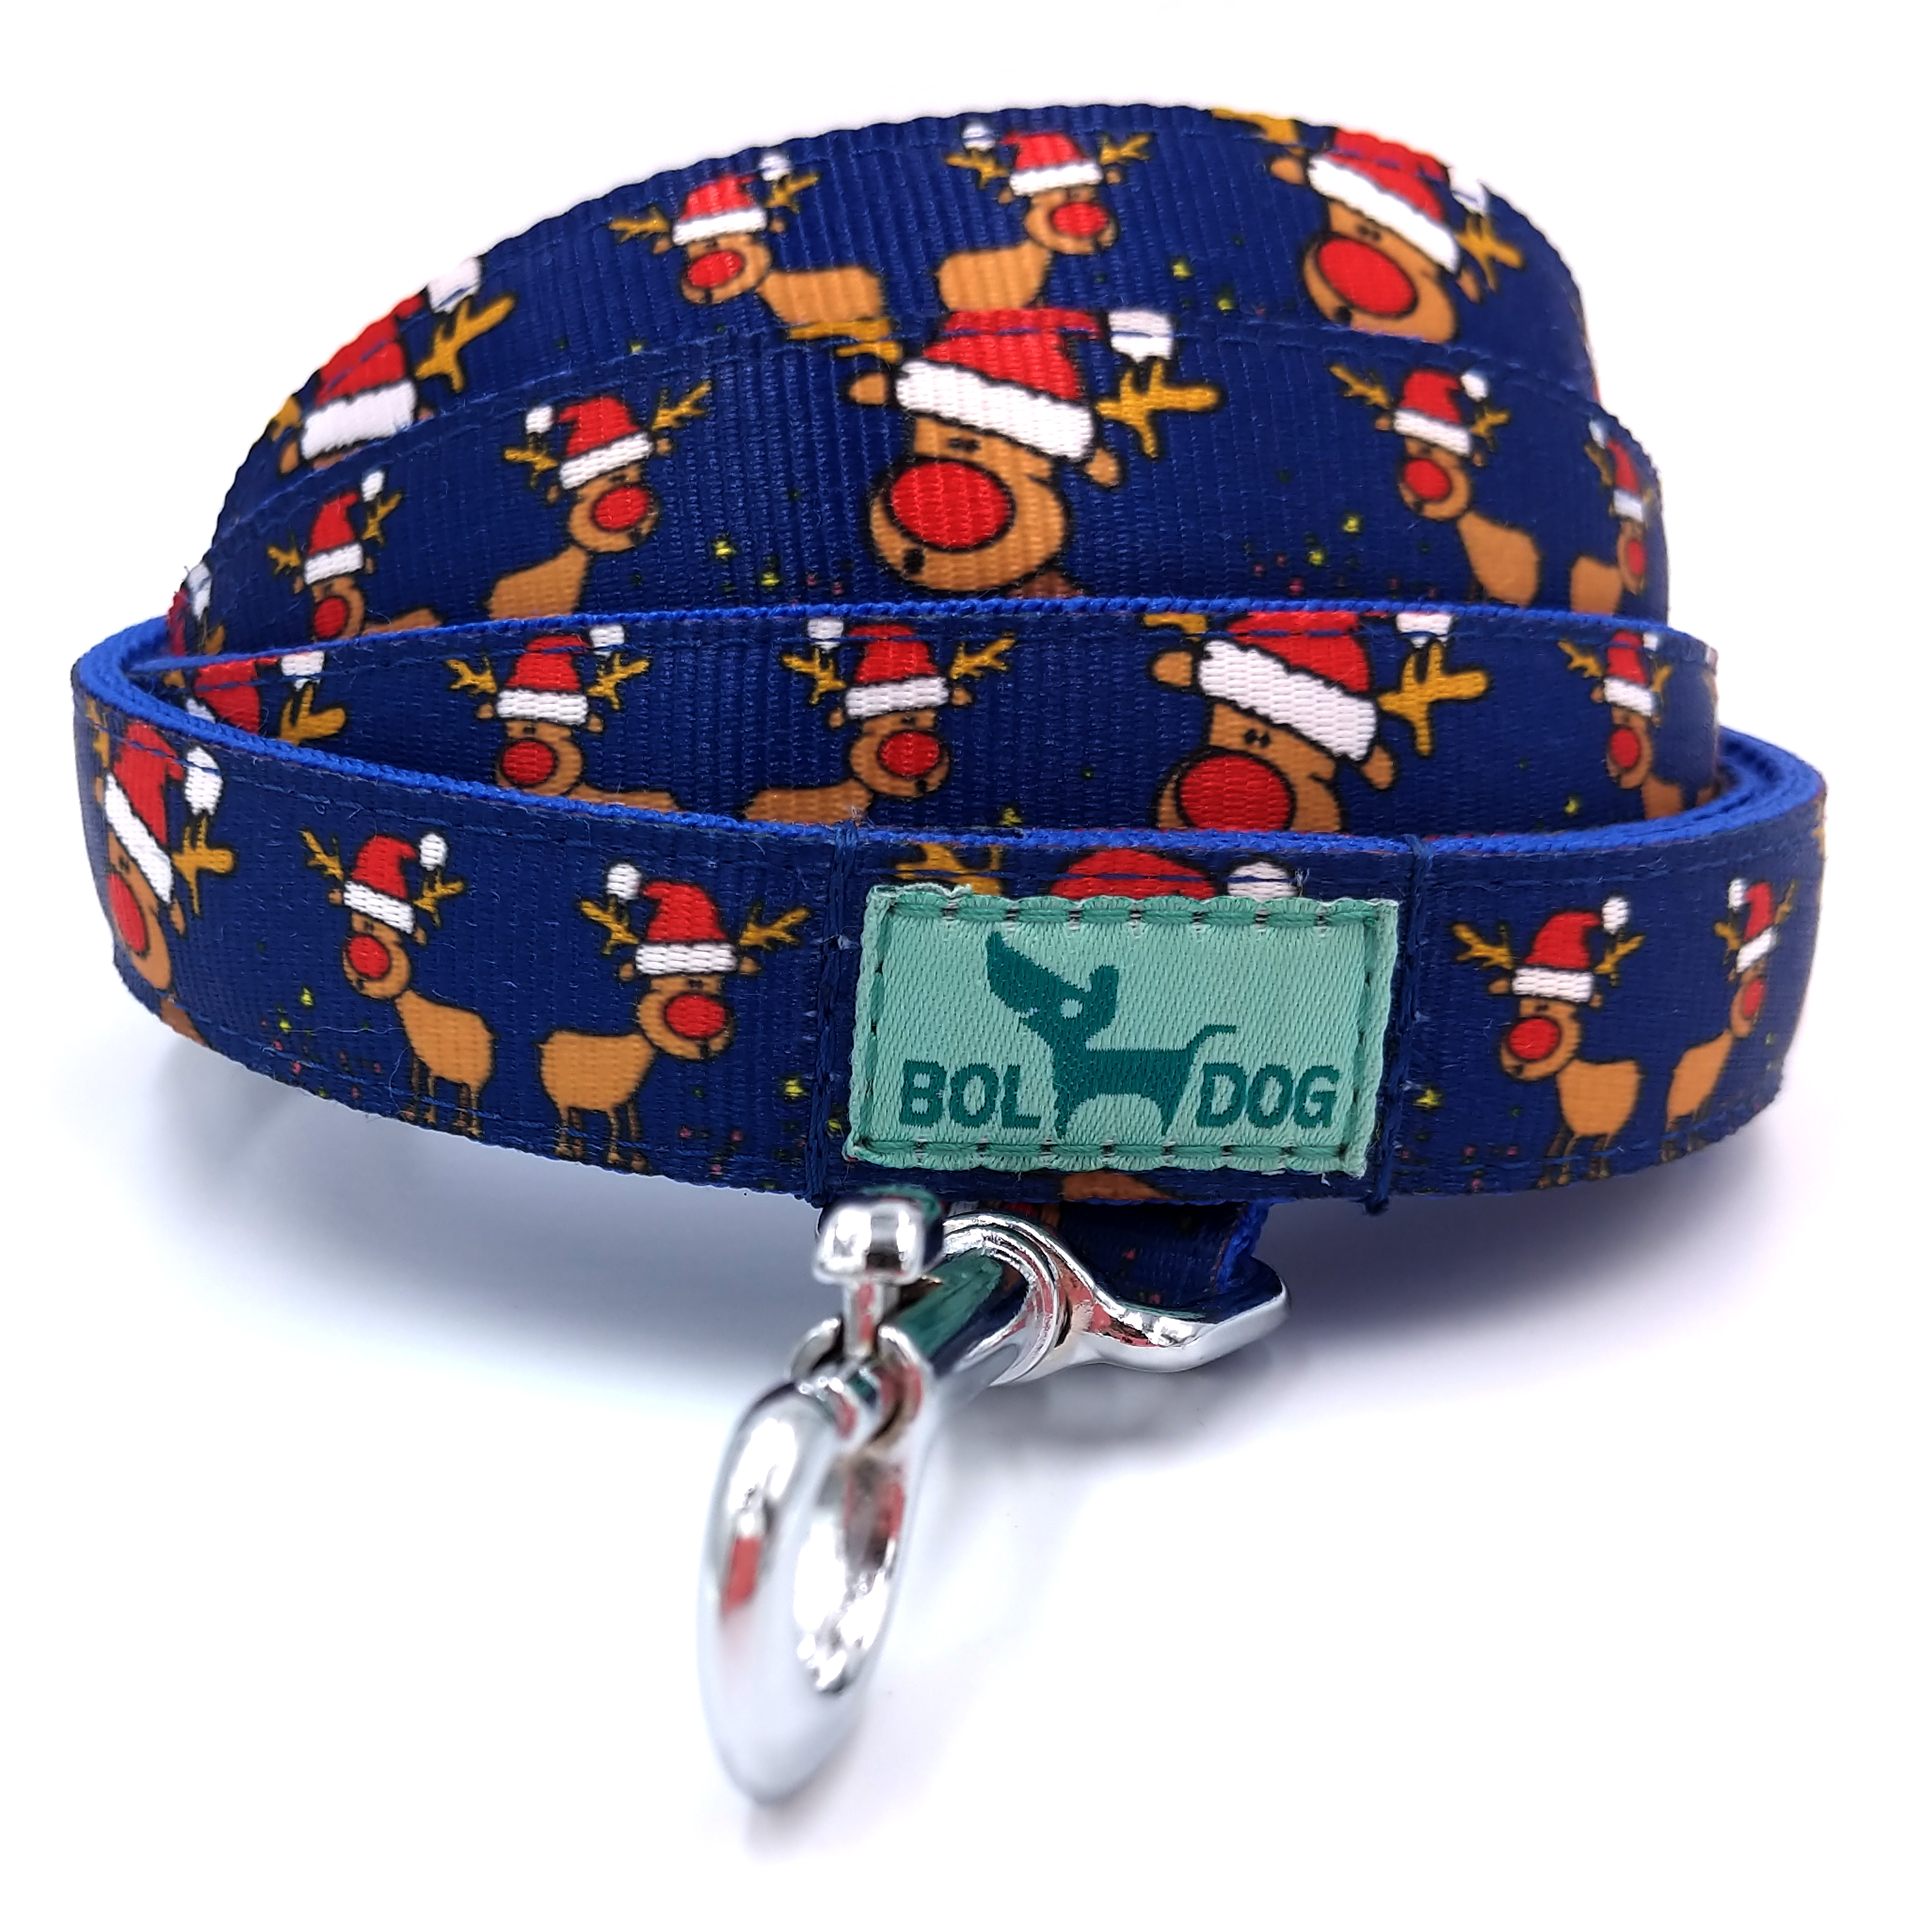 Rudolph blue dog leash